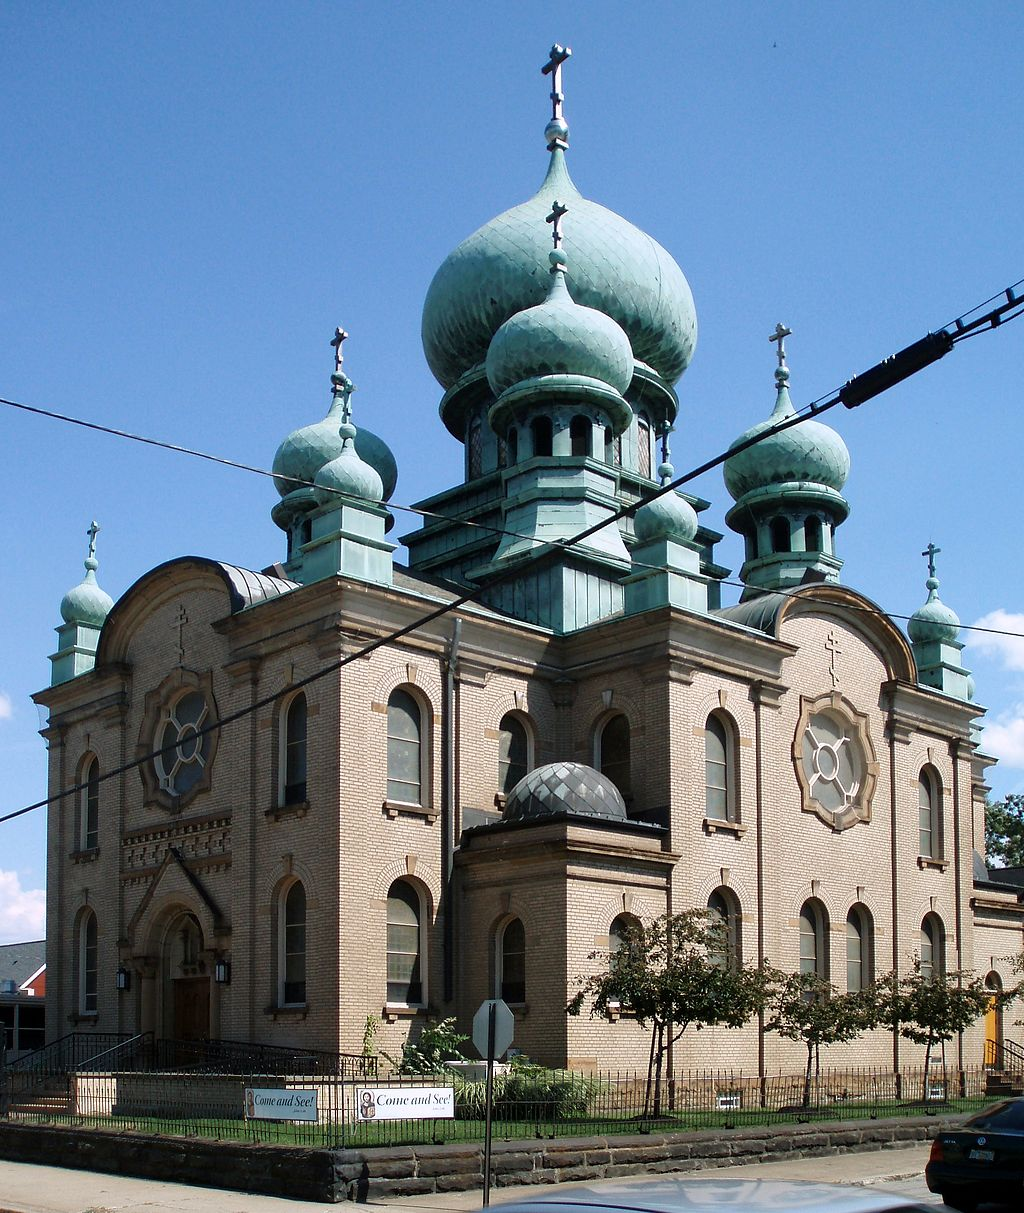 St. Theodosius Cathedral. Photo: Eddie-S, via Wikimedia Commons